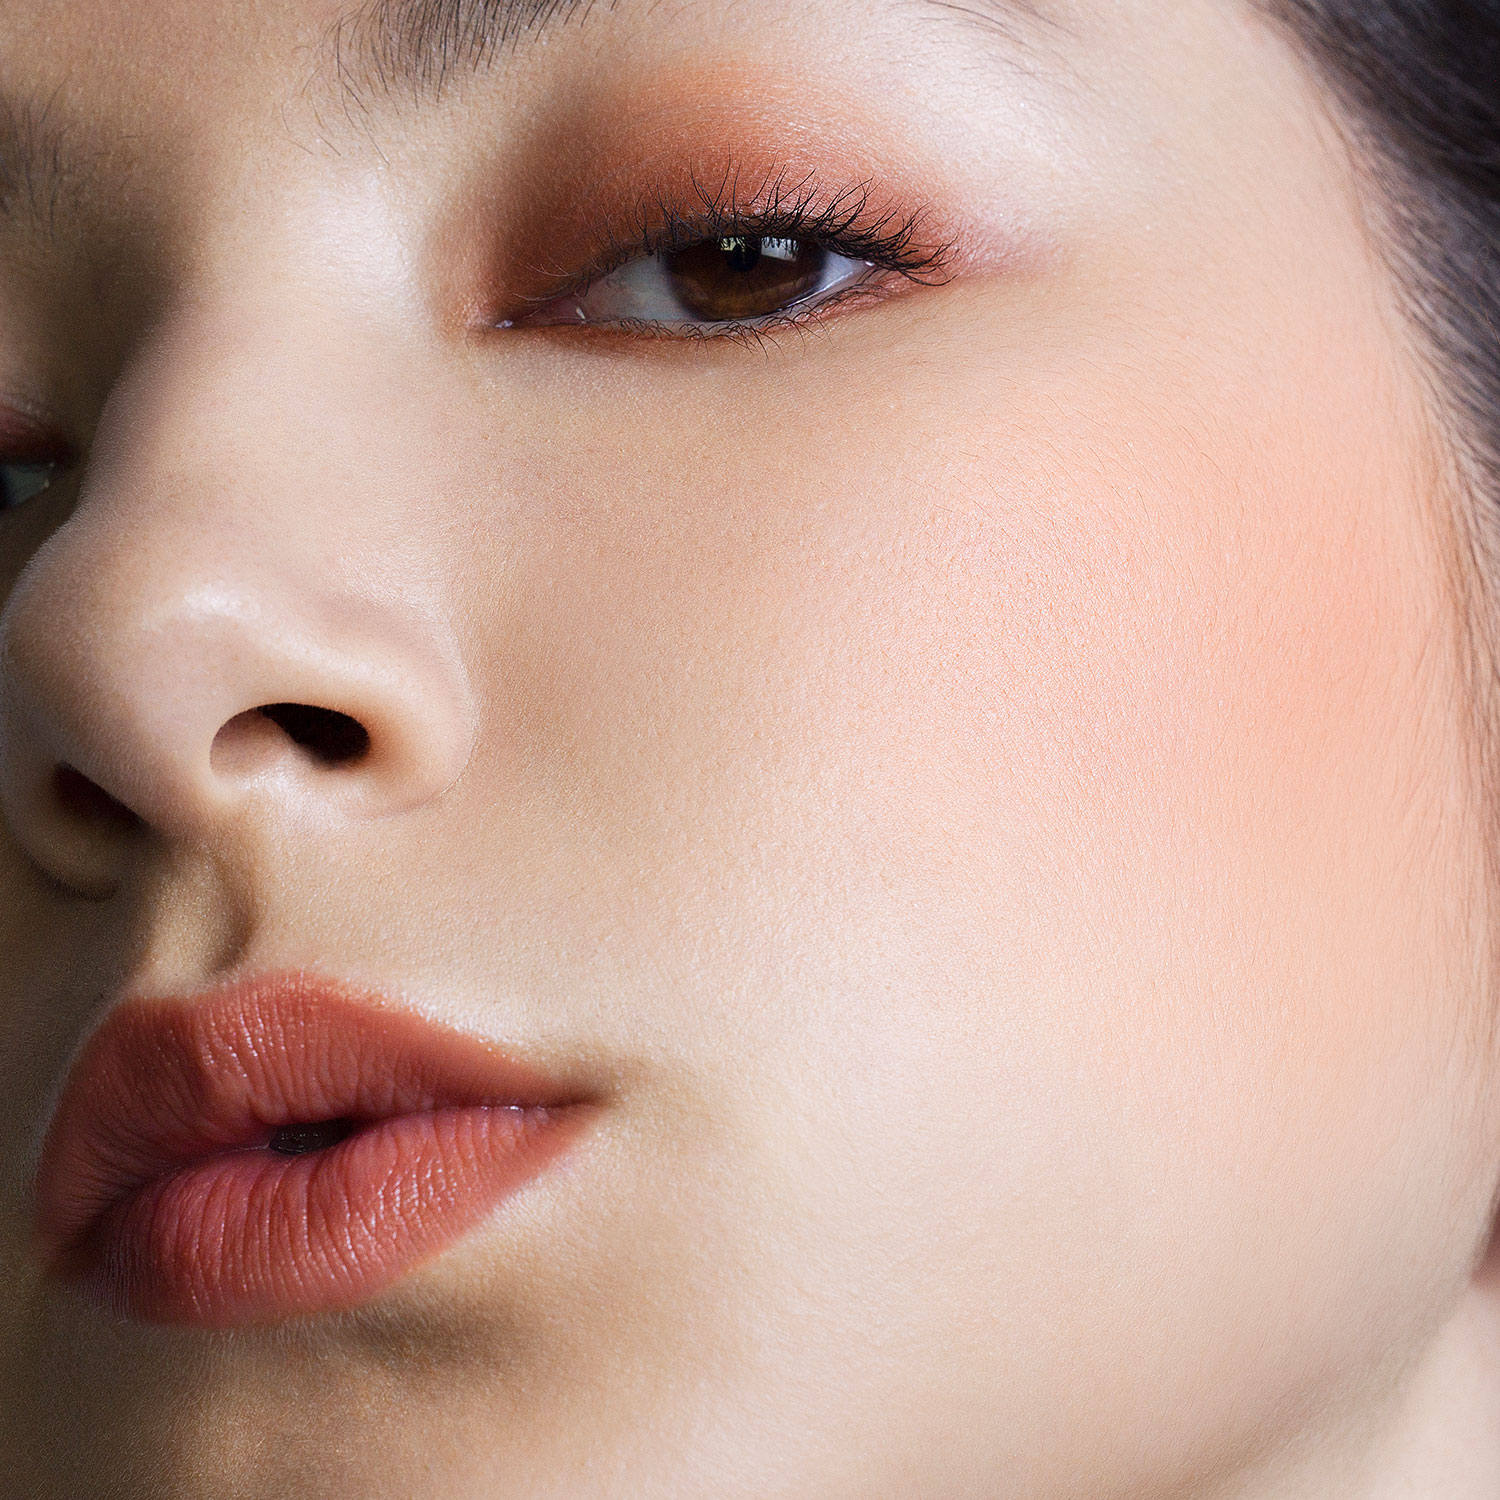 RMK Fall 2021 Collection Rosewood Daydream Ingenious Powder Cheeks N EX-19 Amber Sunset